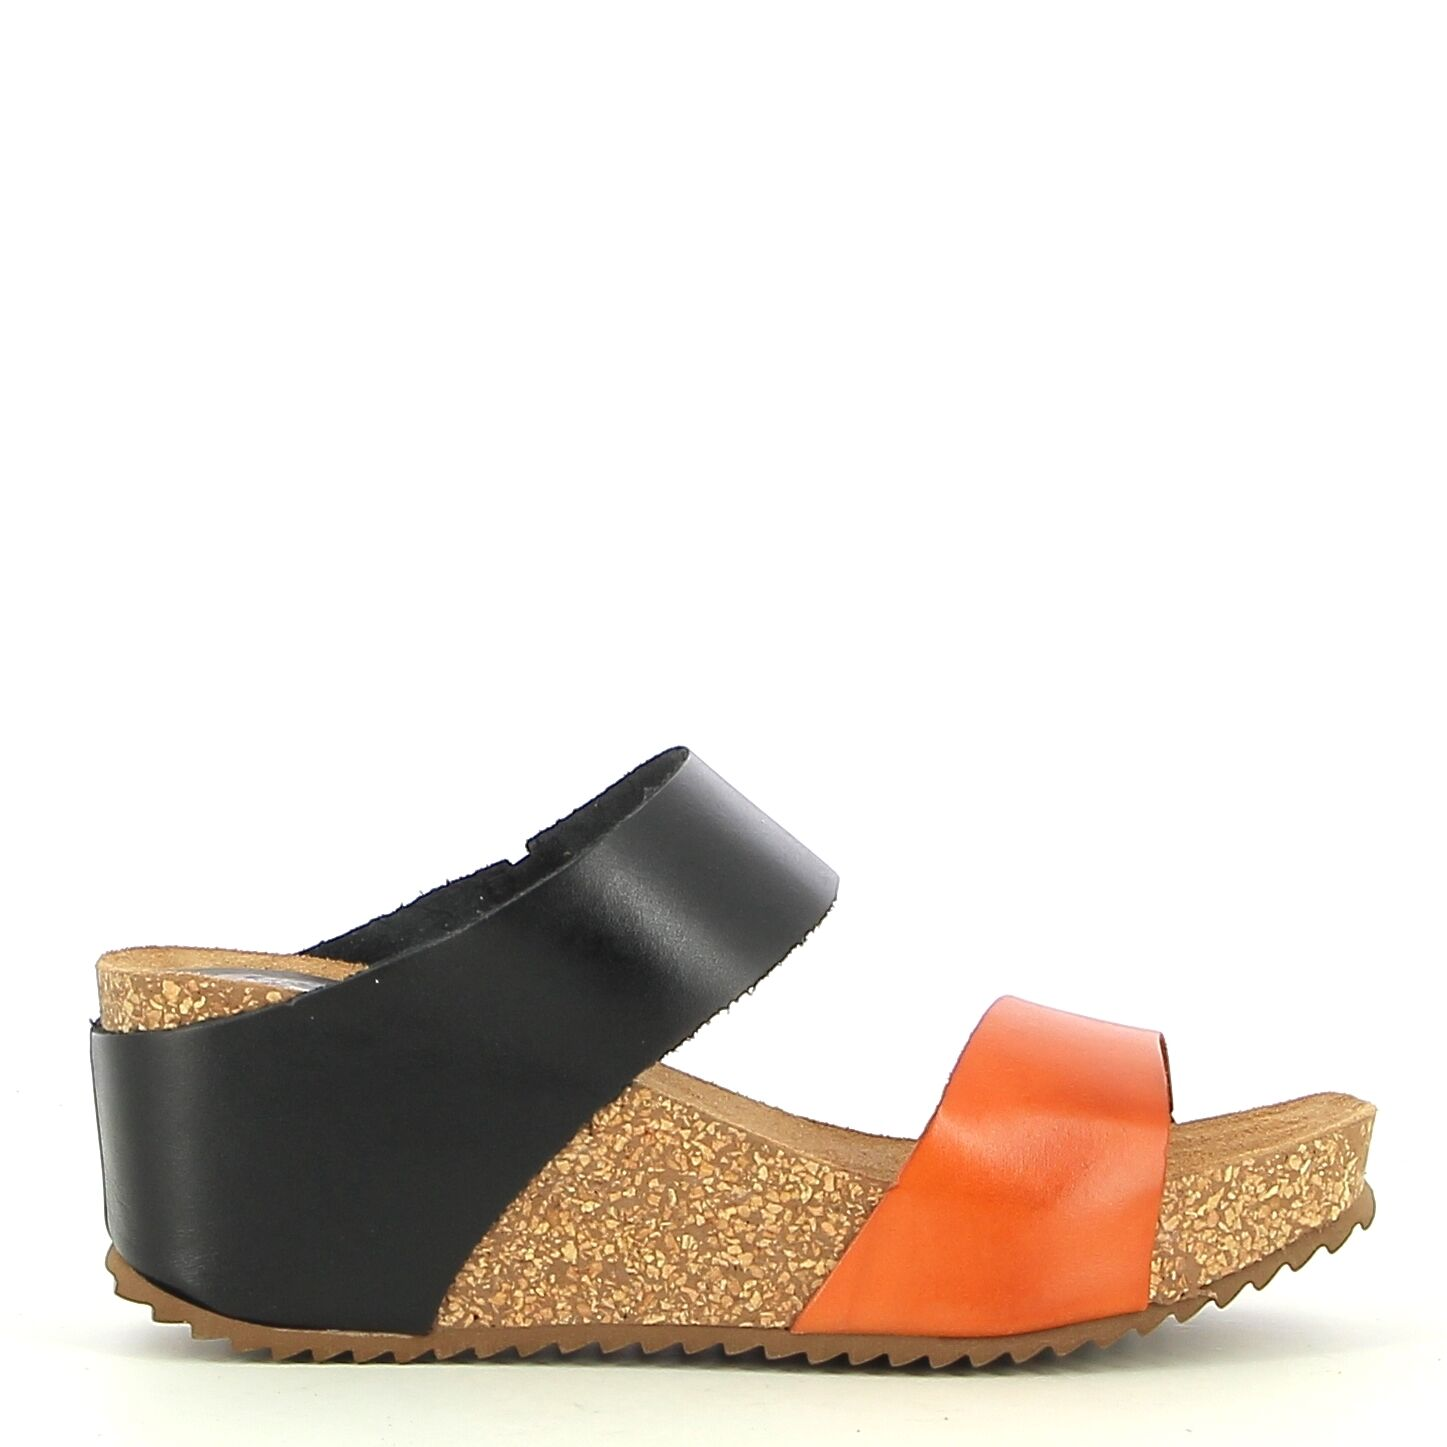 Ken Shoe Fashion - Oranje/Zwart - Instappers